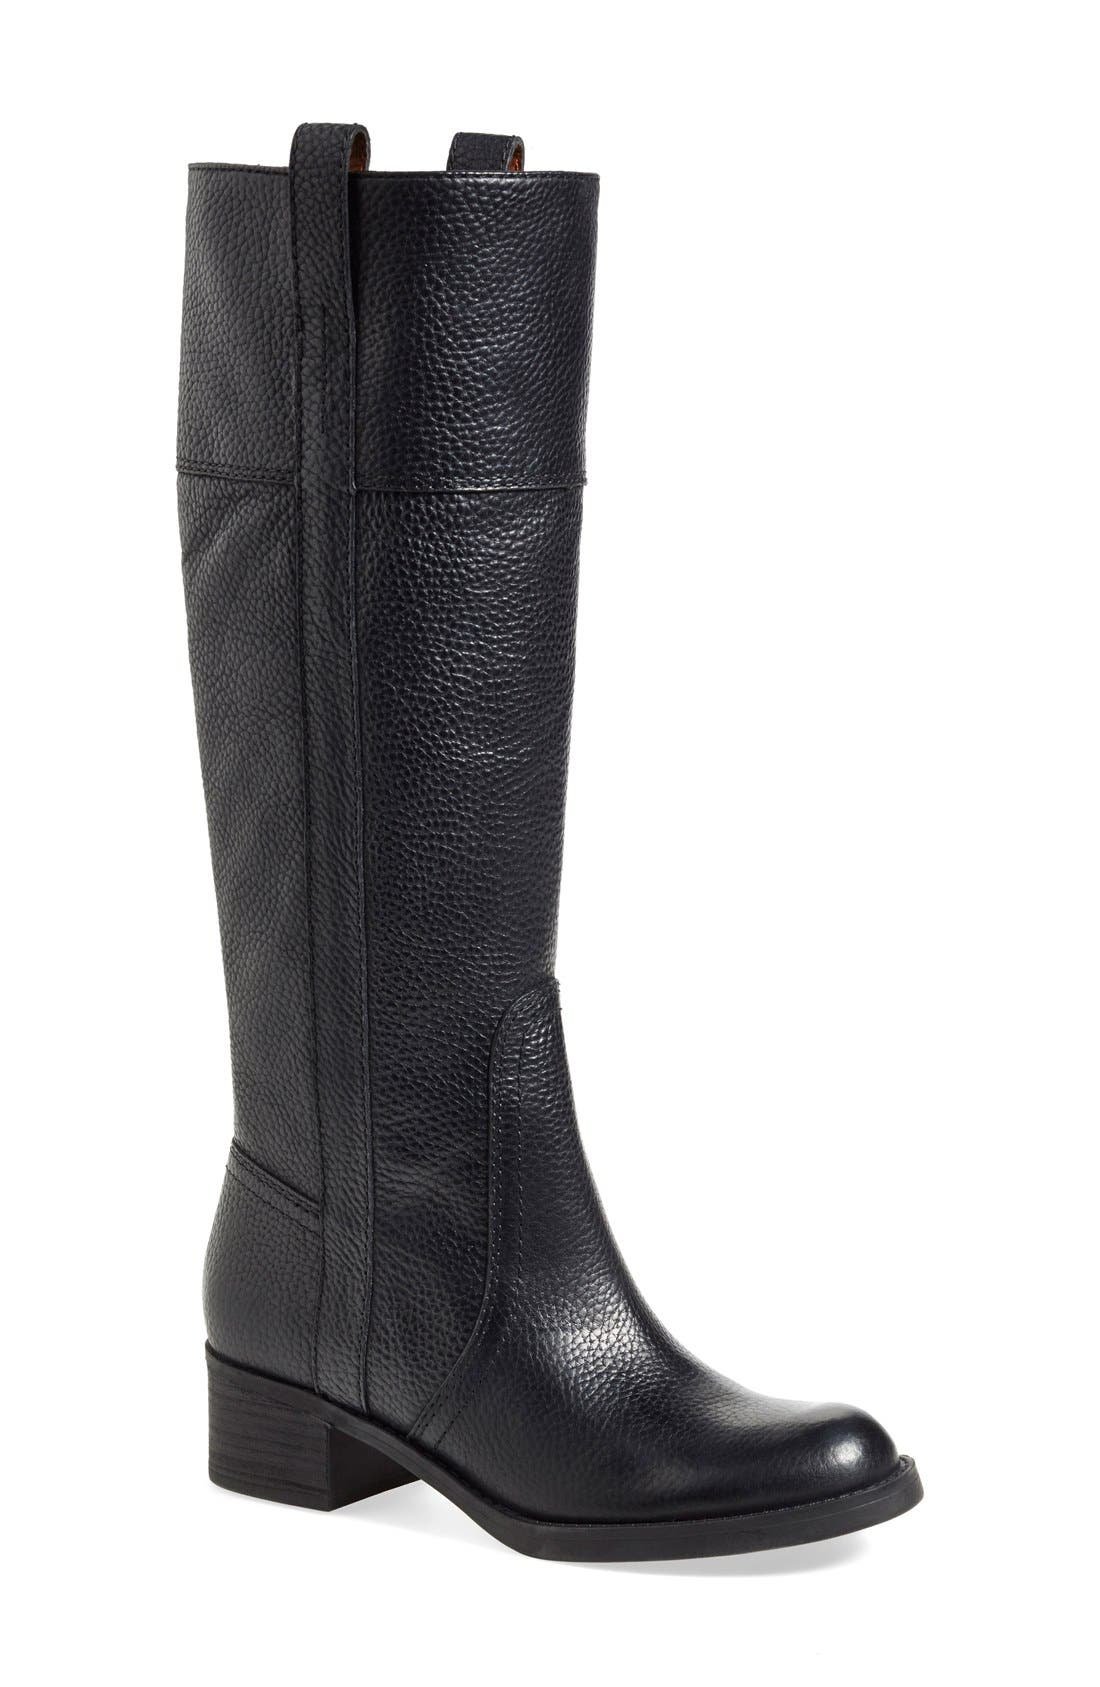 LUCKY BRAND 'Heloisse' Boot, Main, color, 002